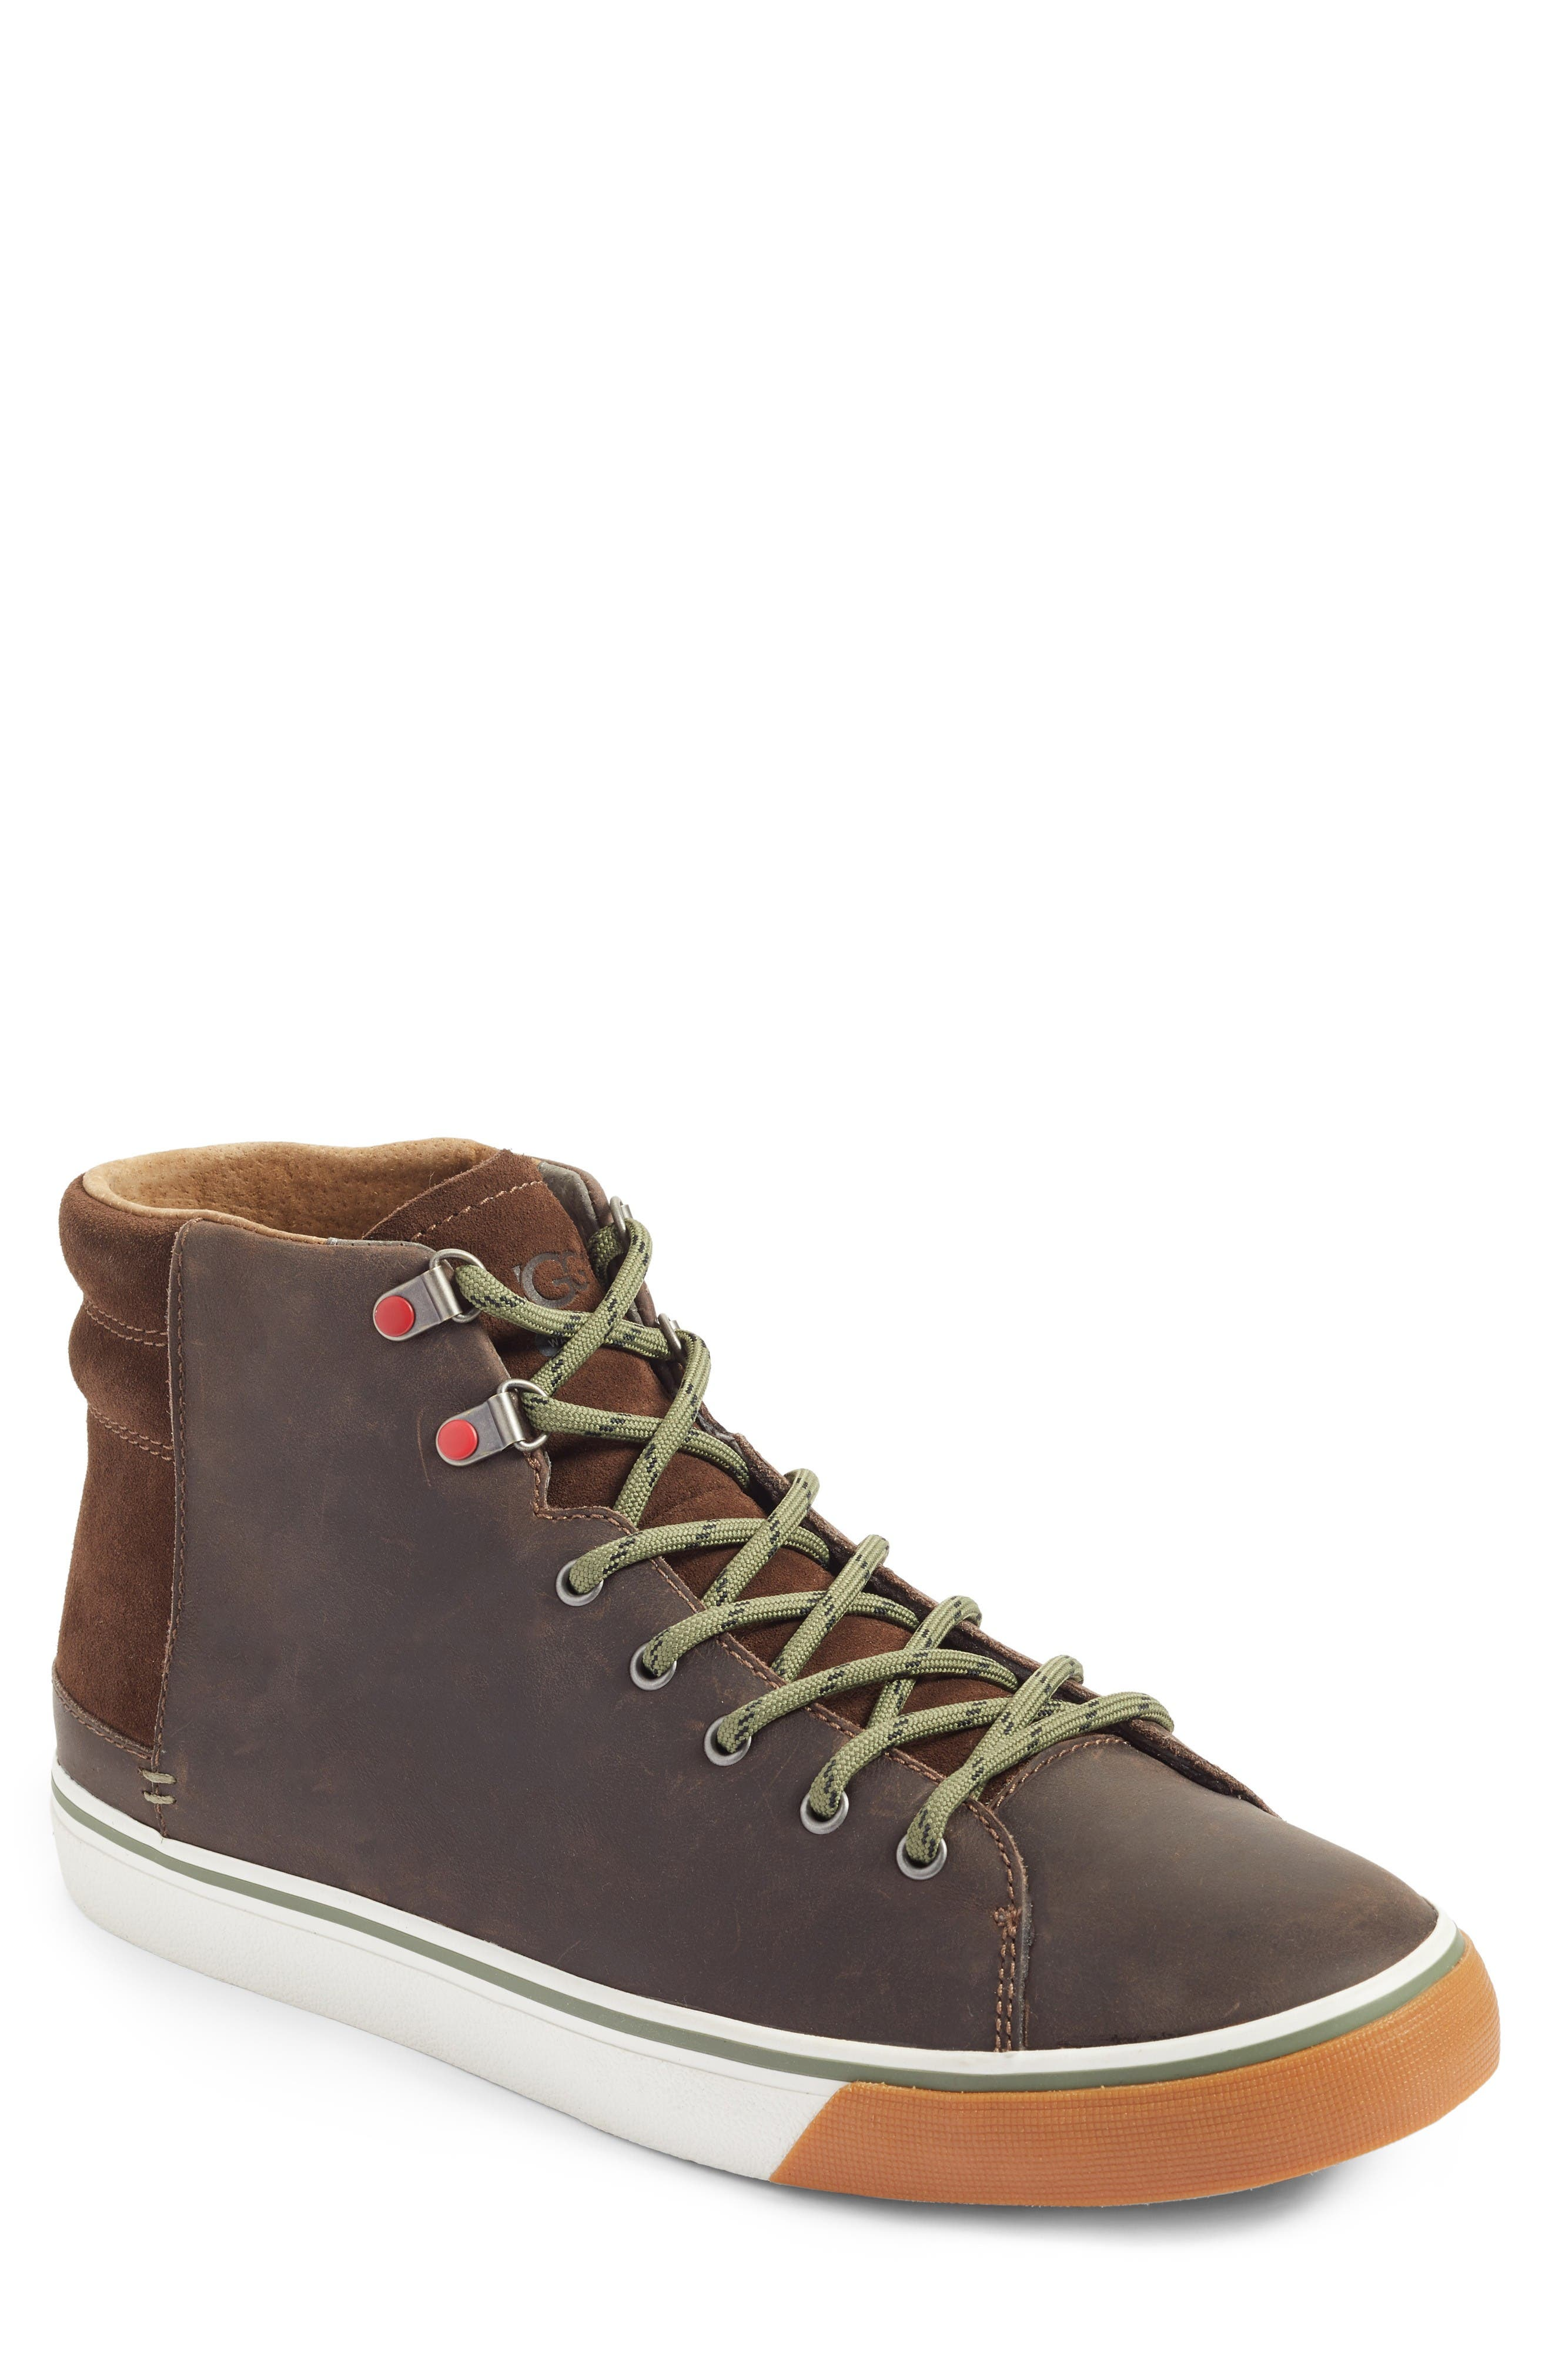 Hoyt High Top Sneaker,                         Main,                         color, Grizzly